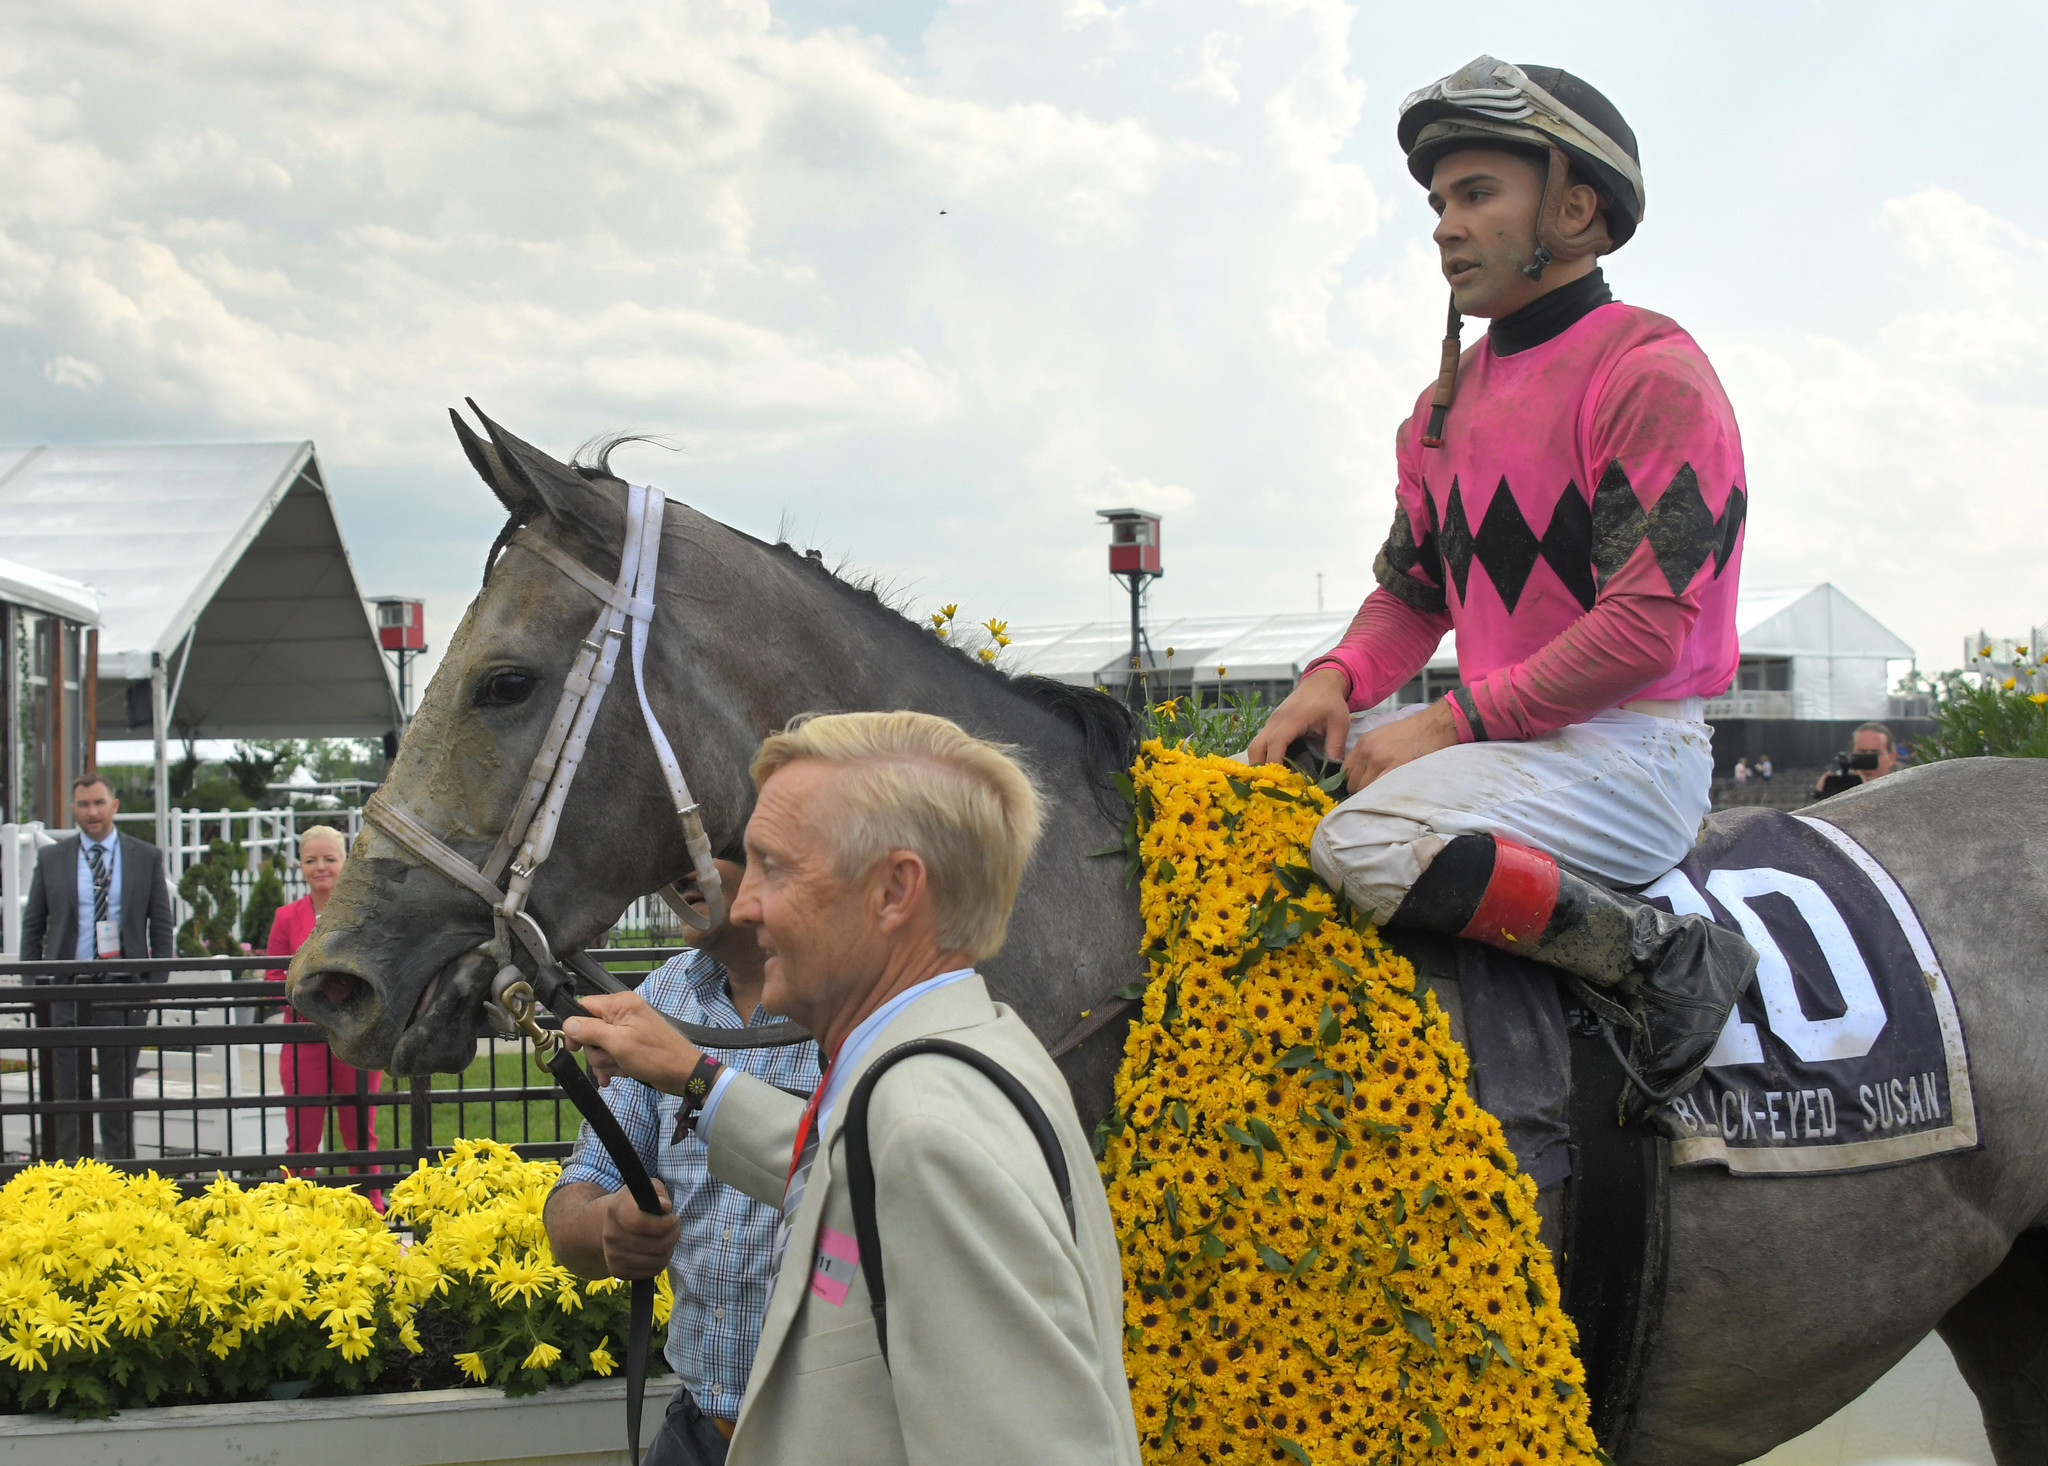 Black-Eyed Susan win was emotional for jockey from Maryland